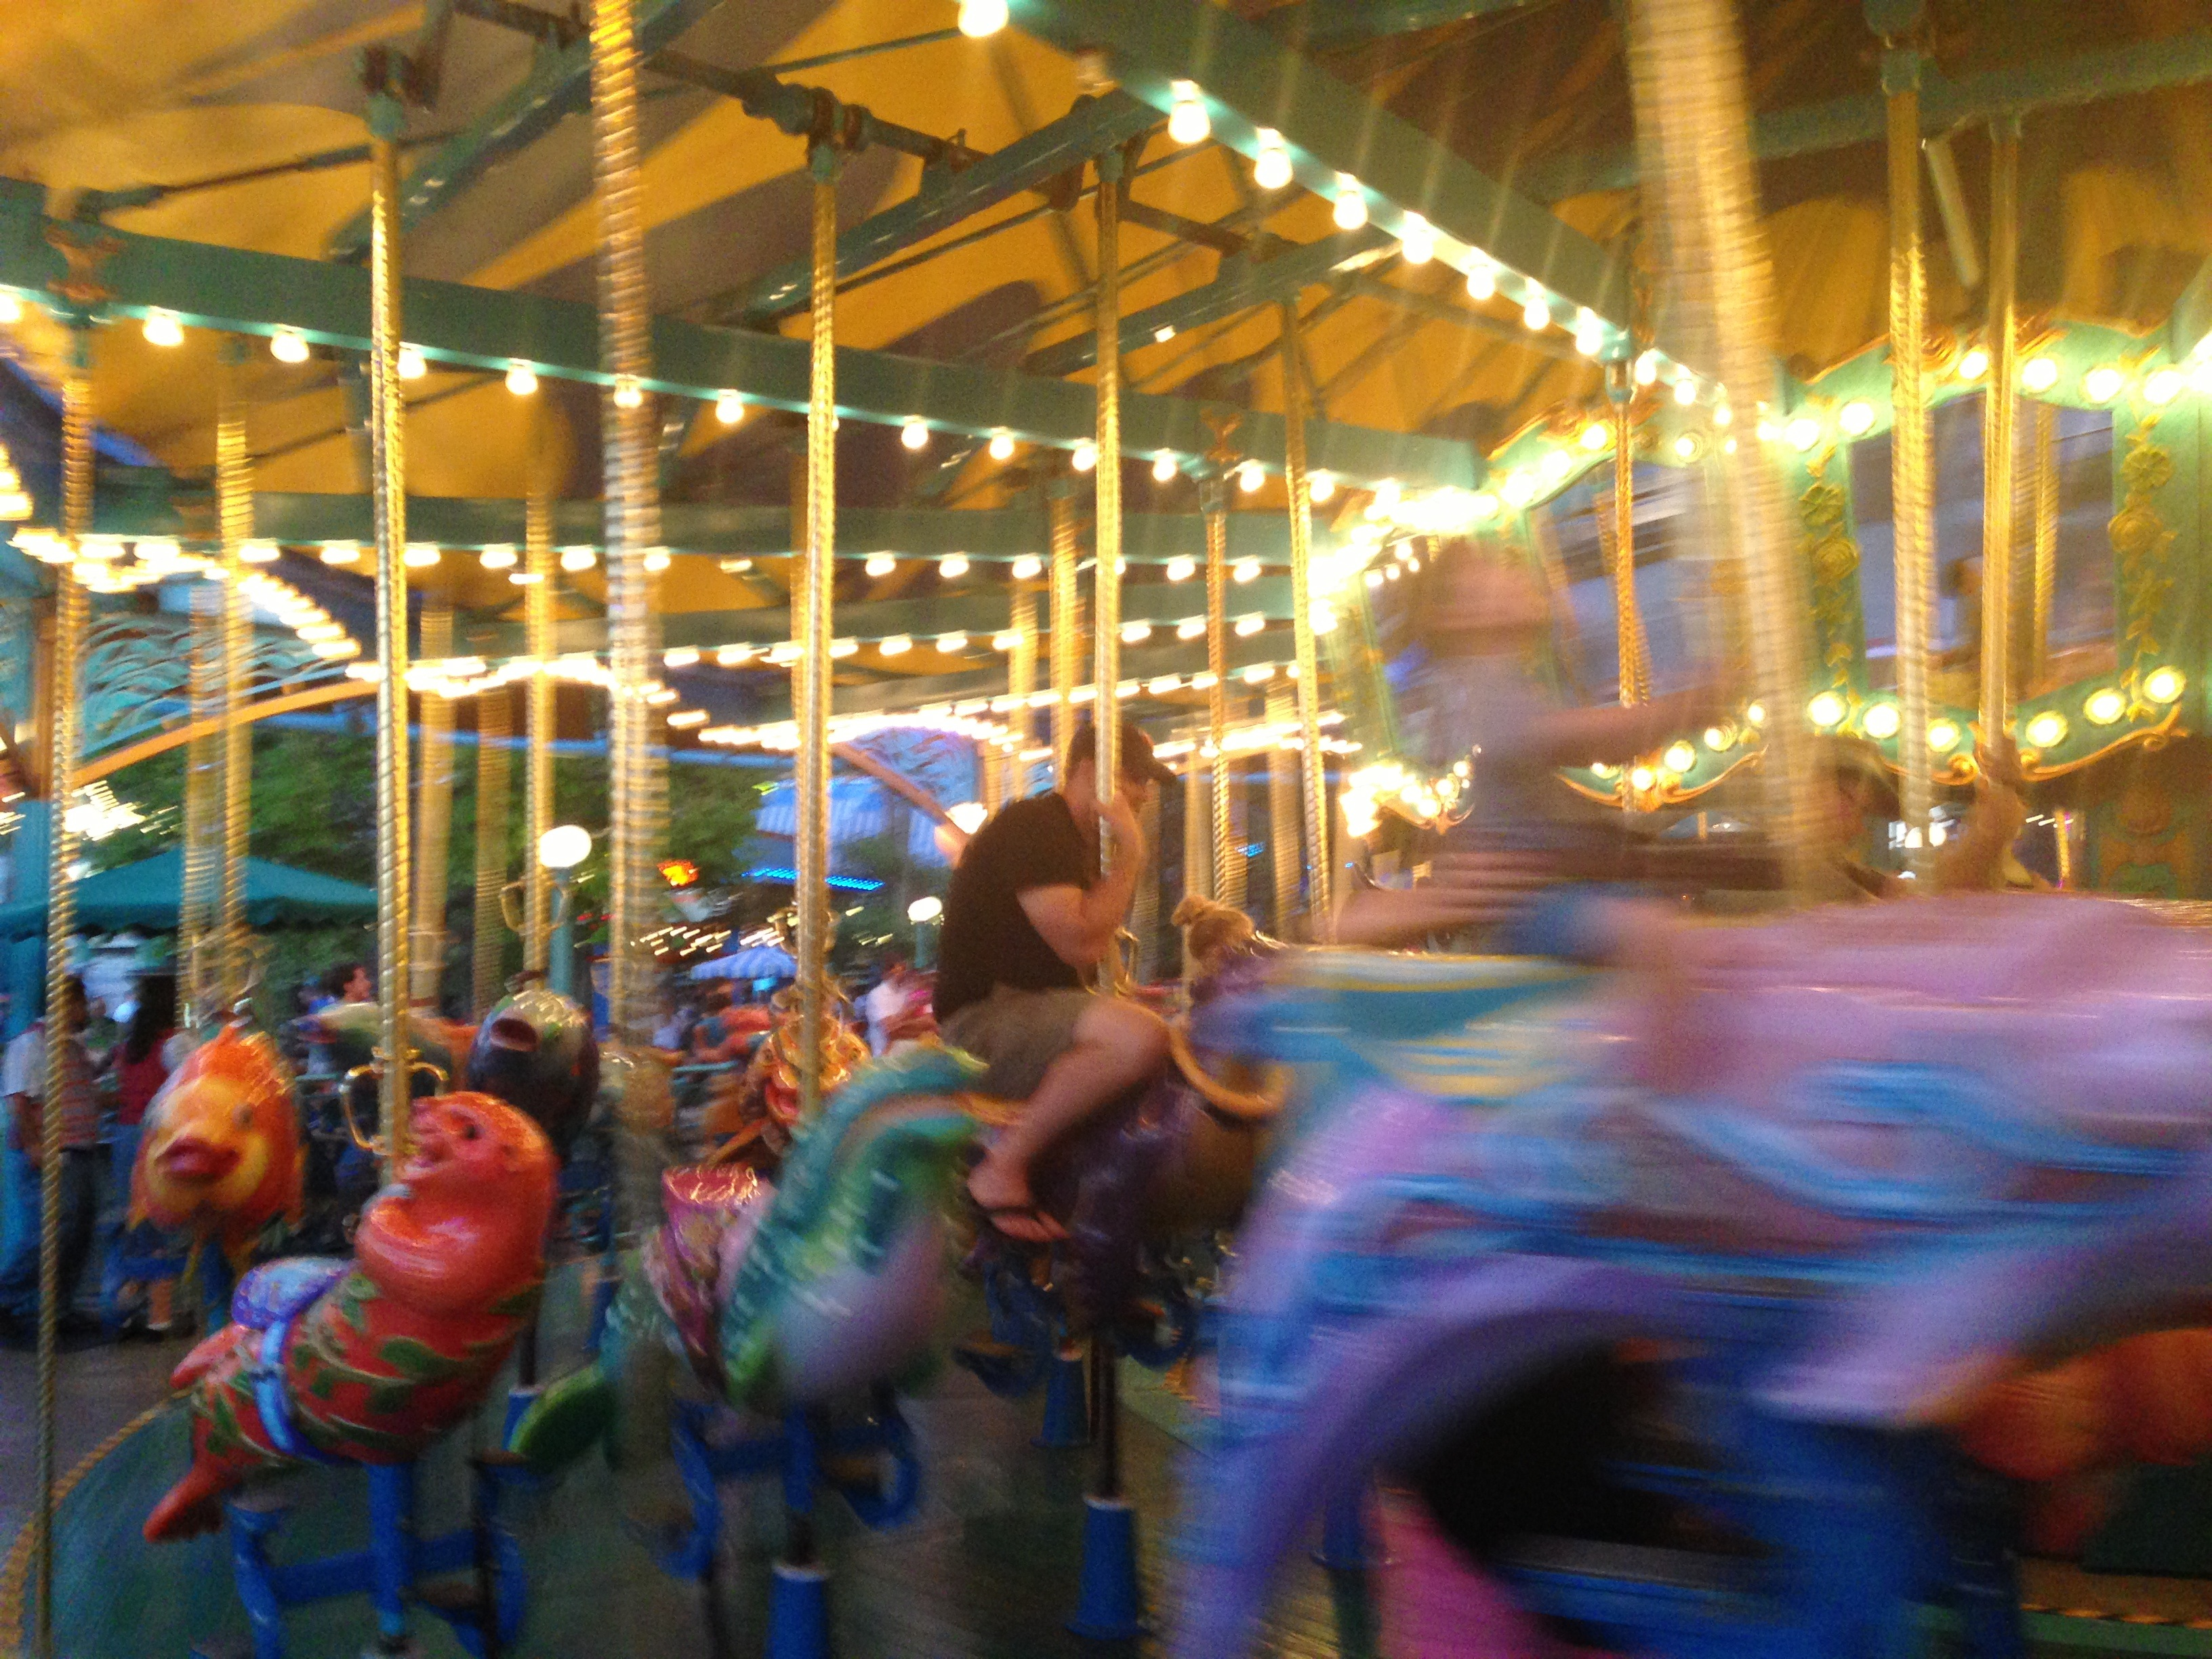 Some 33-year-olds like the carousel.